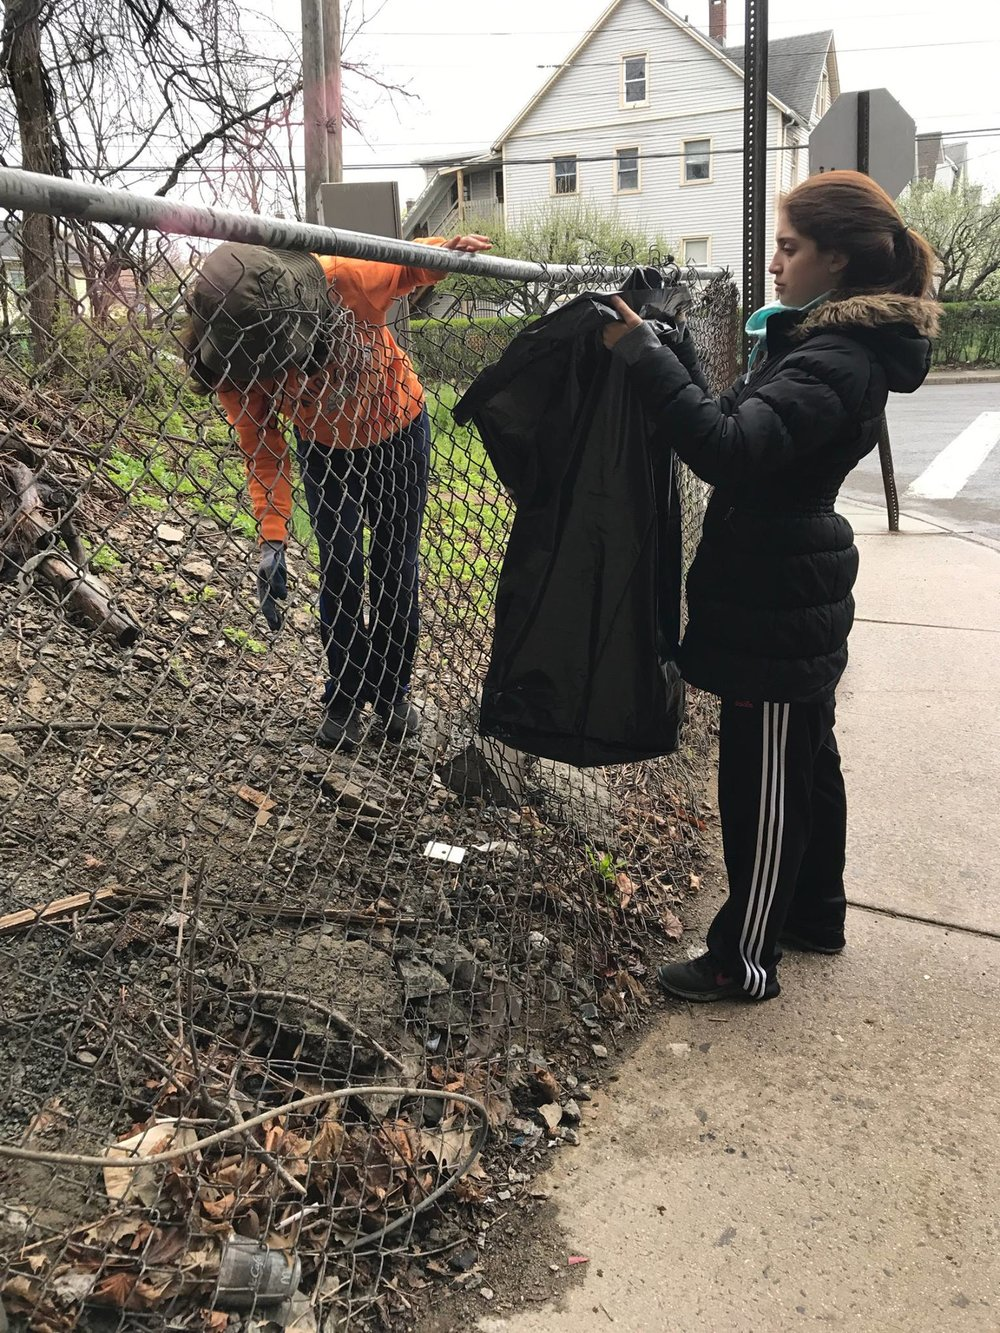 Debbie and Steph picking up garbage on Lockwood under the 95 bridge. One block from DOMUS. A clean neighborhood is the most basic foundation of education.